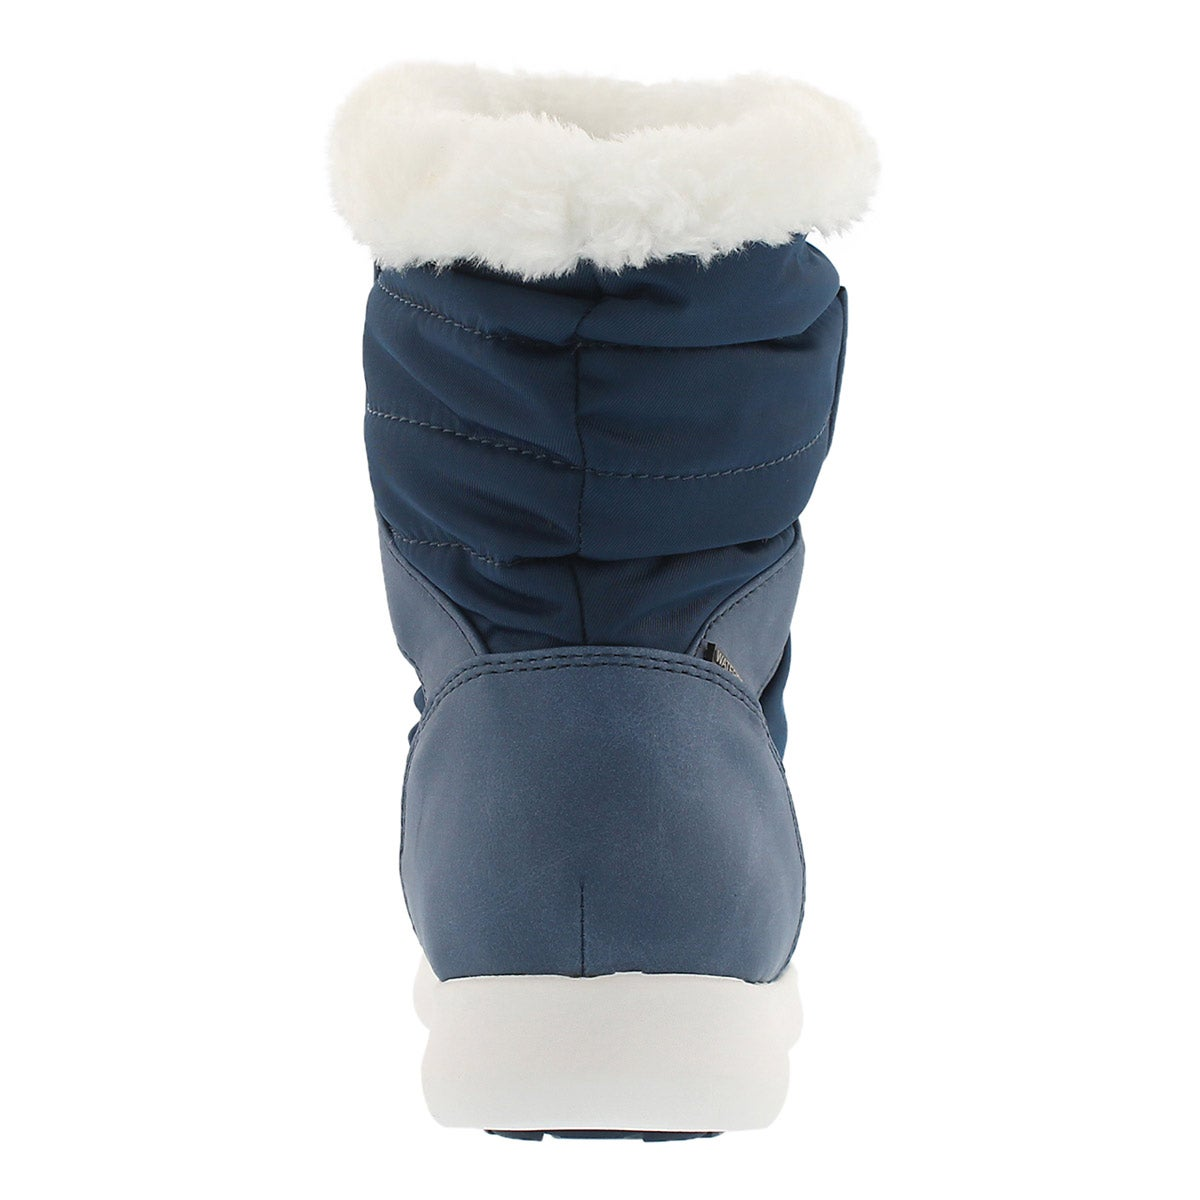 Lds Wonder blue wtpf pull on winter boot